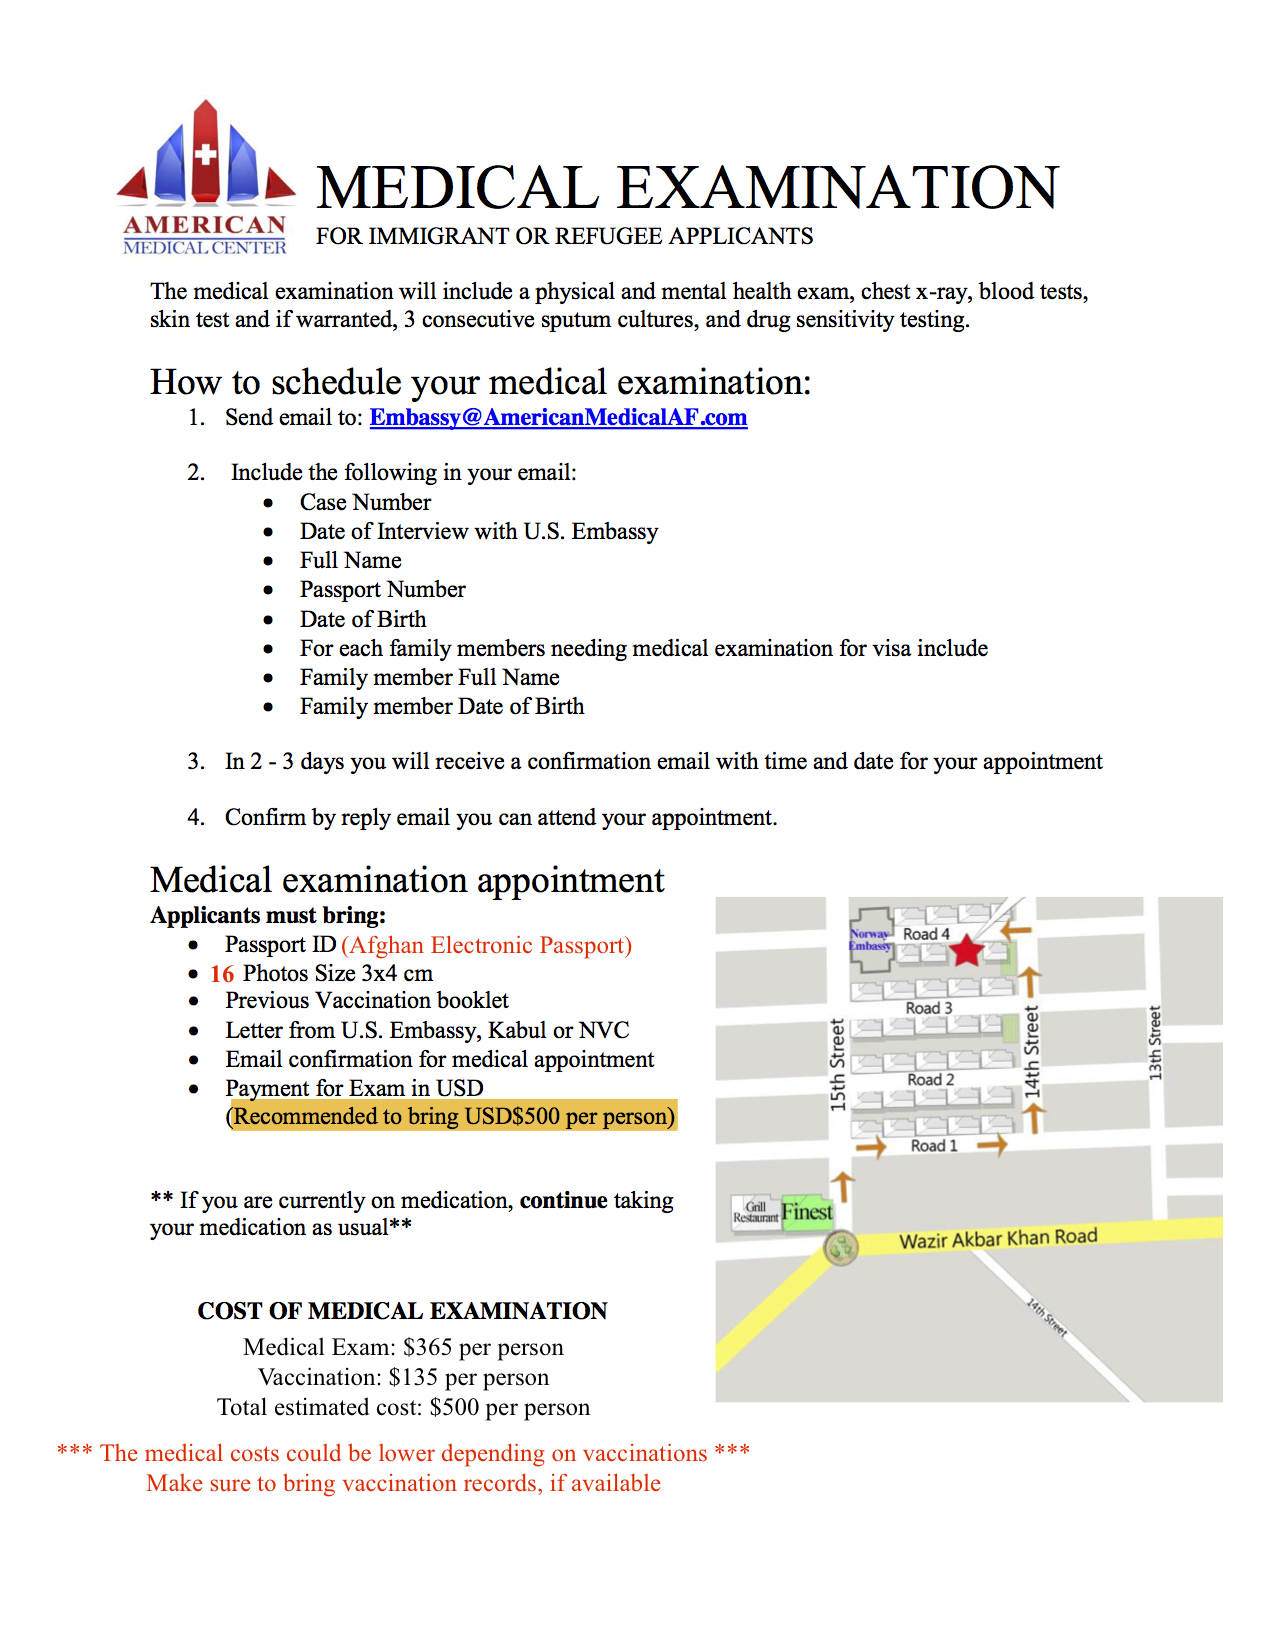 Medical Exam Appointment Instruction